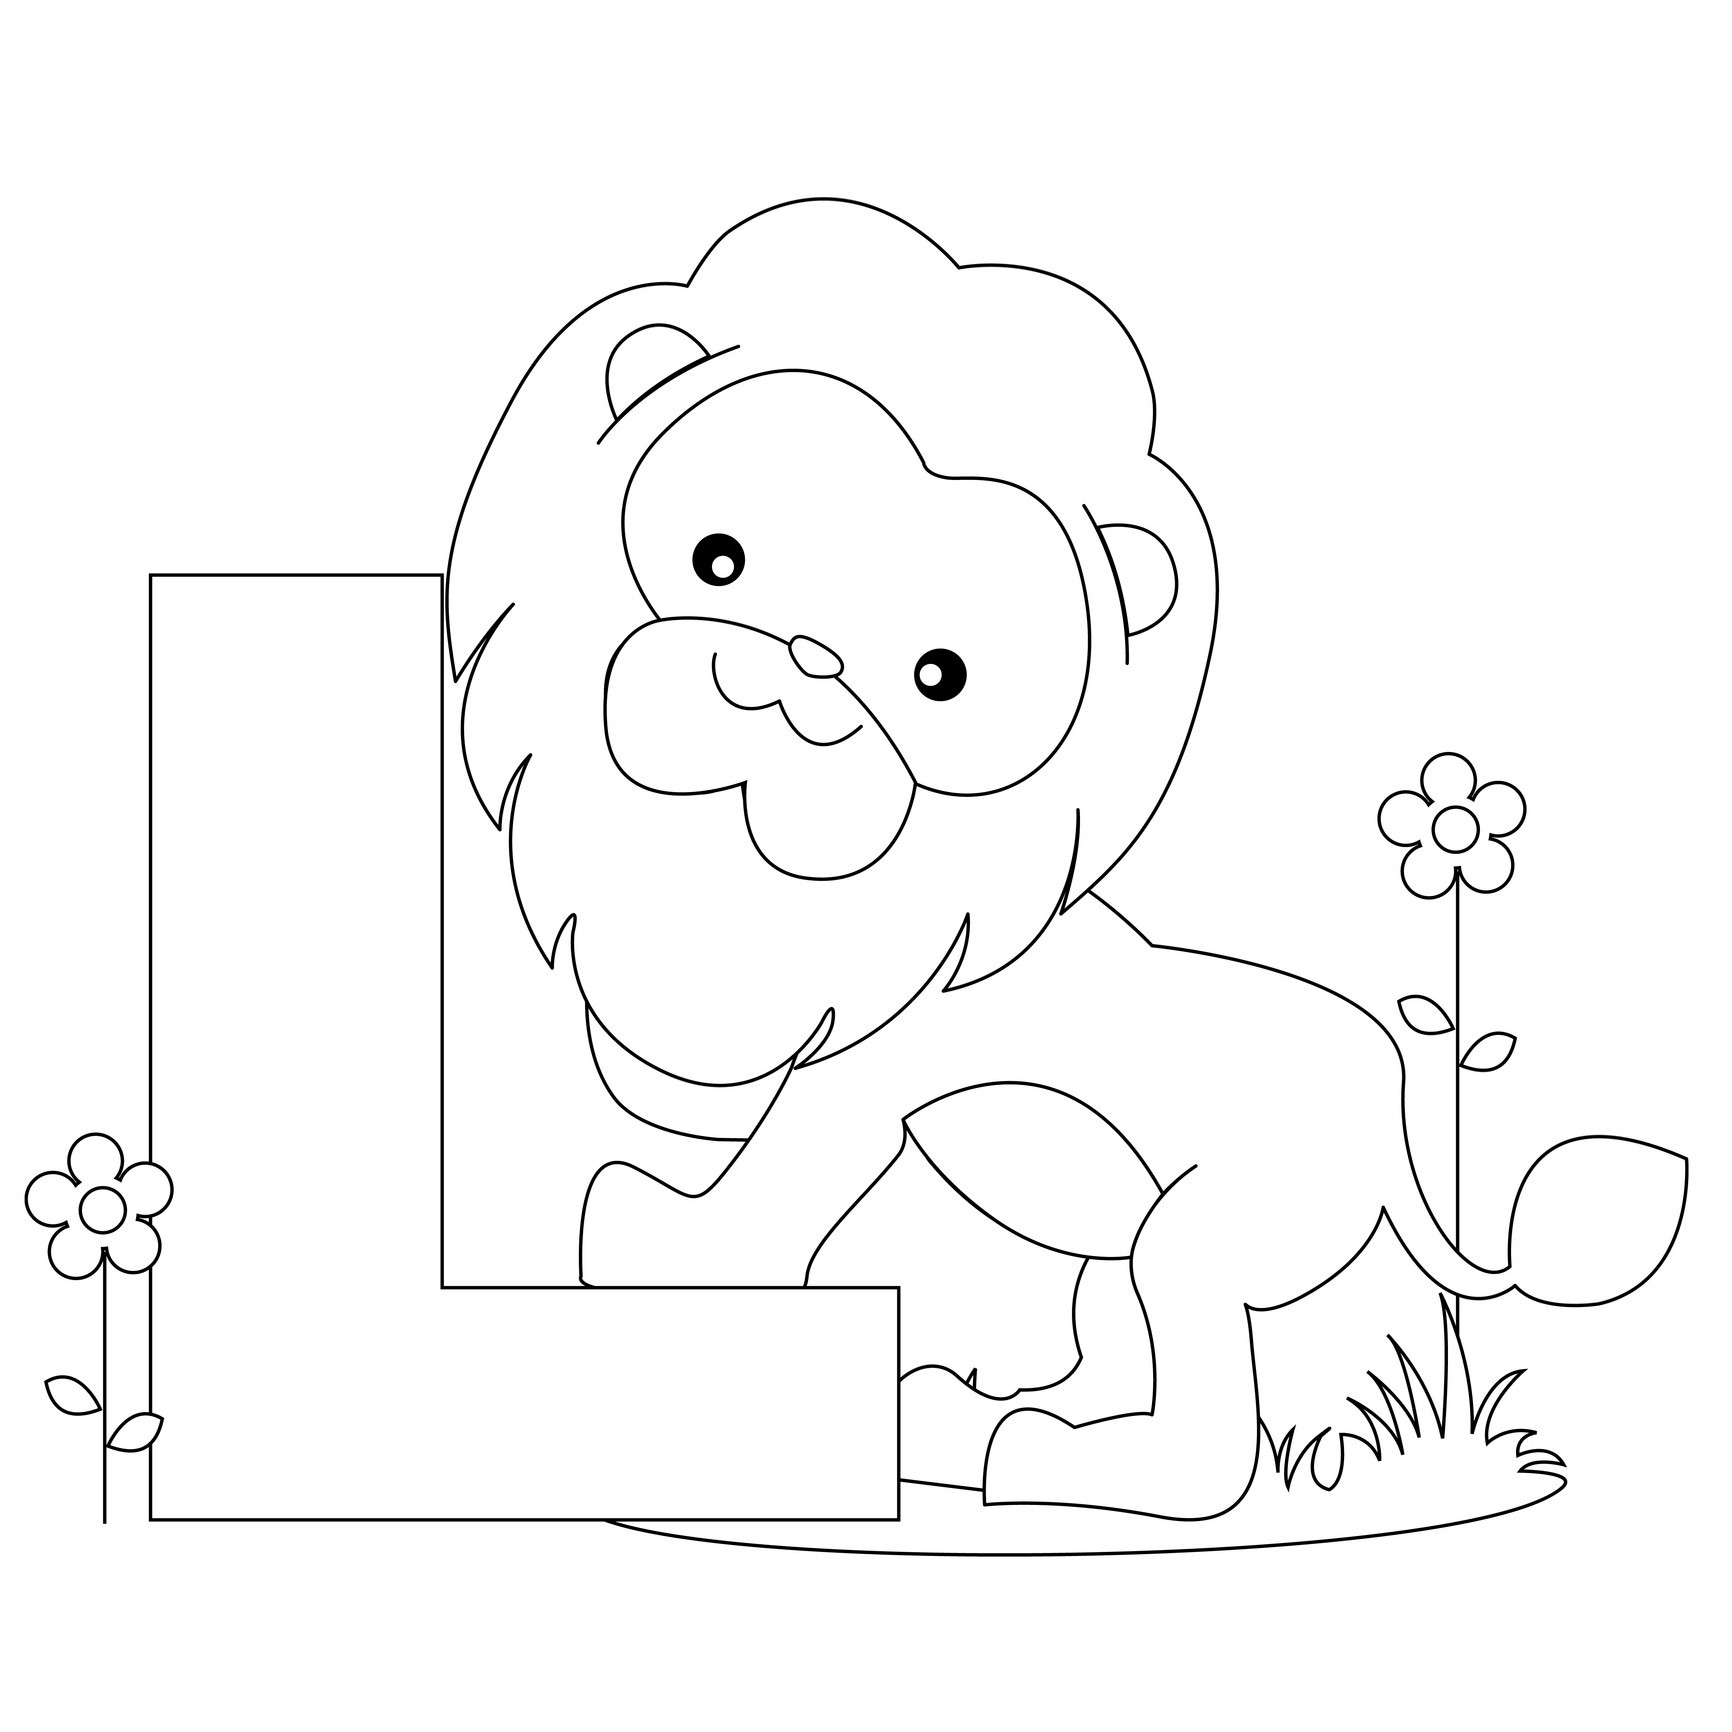 colouring pictures of alphabets printable toddler coloring pages for kids colouring of pictures alphabets